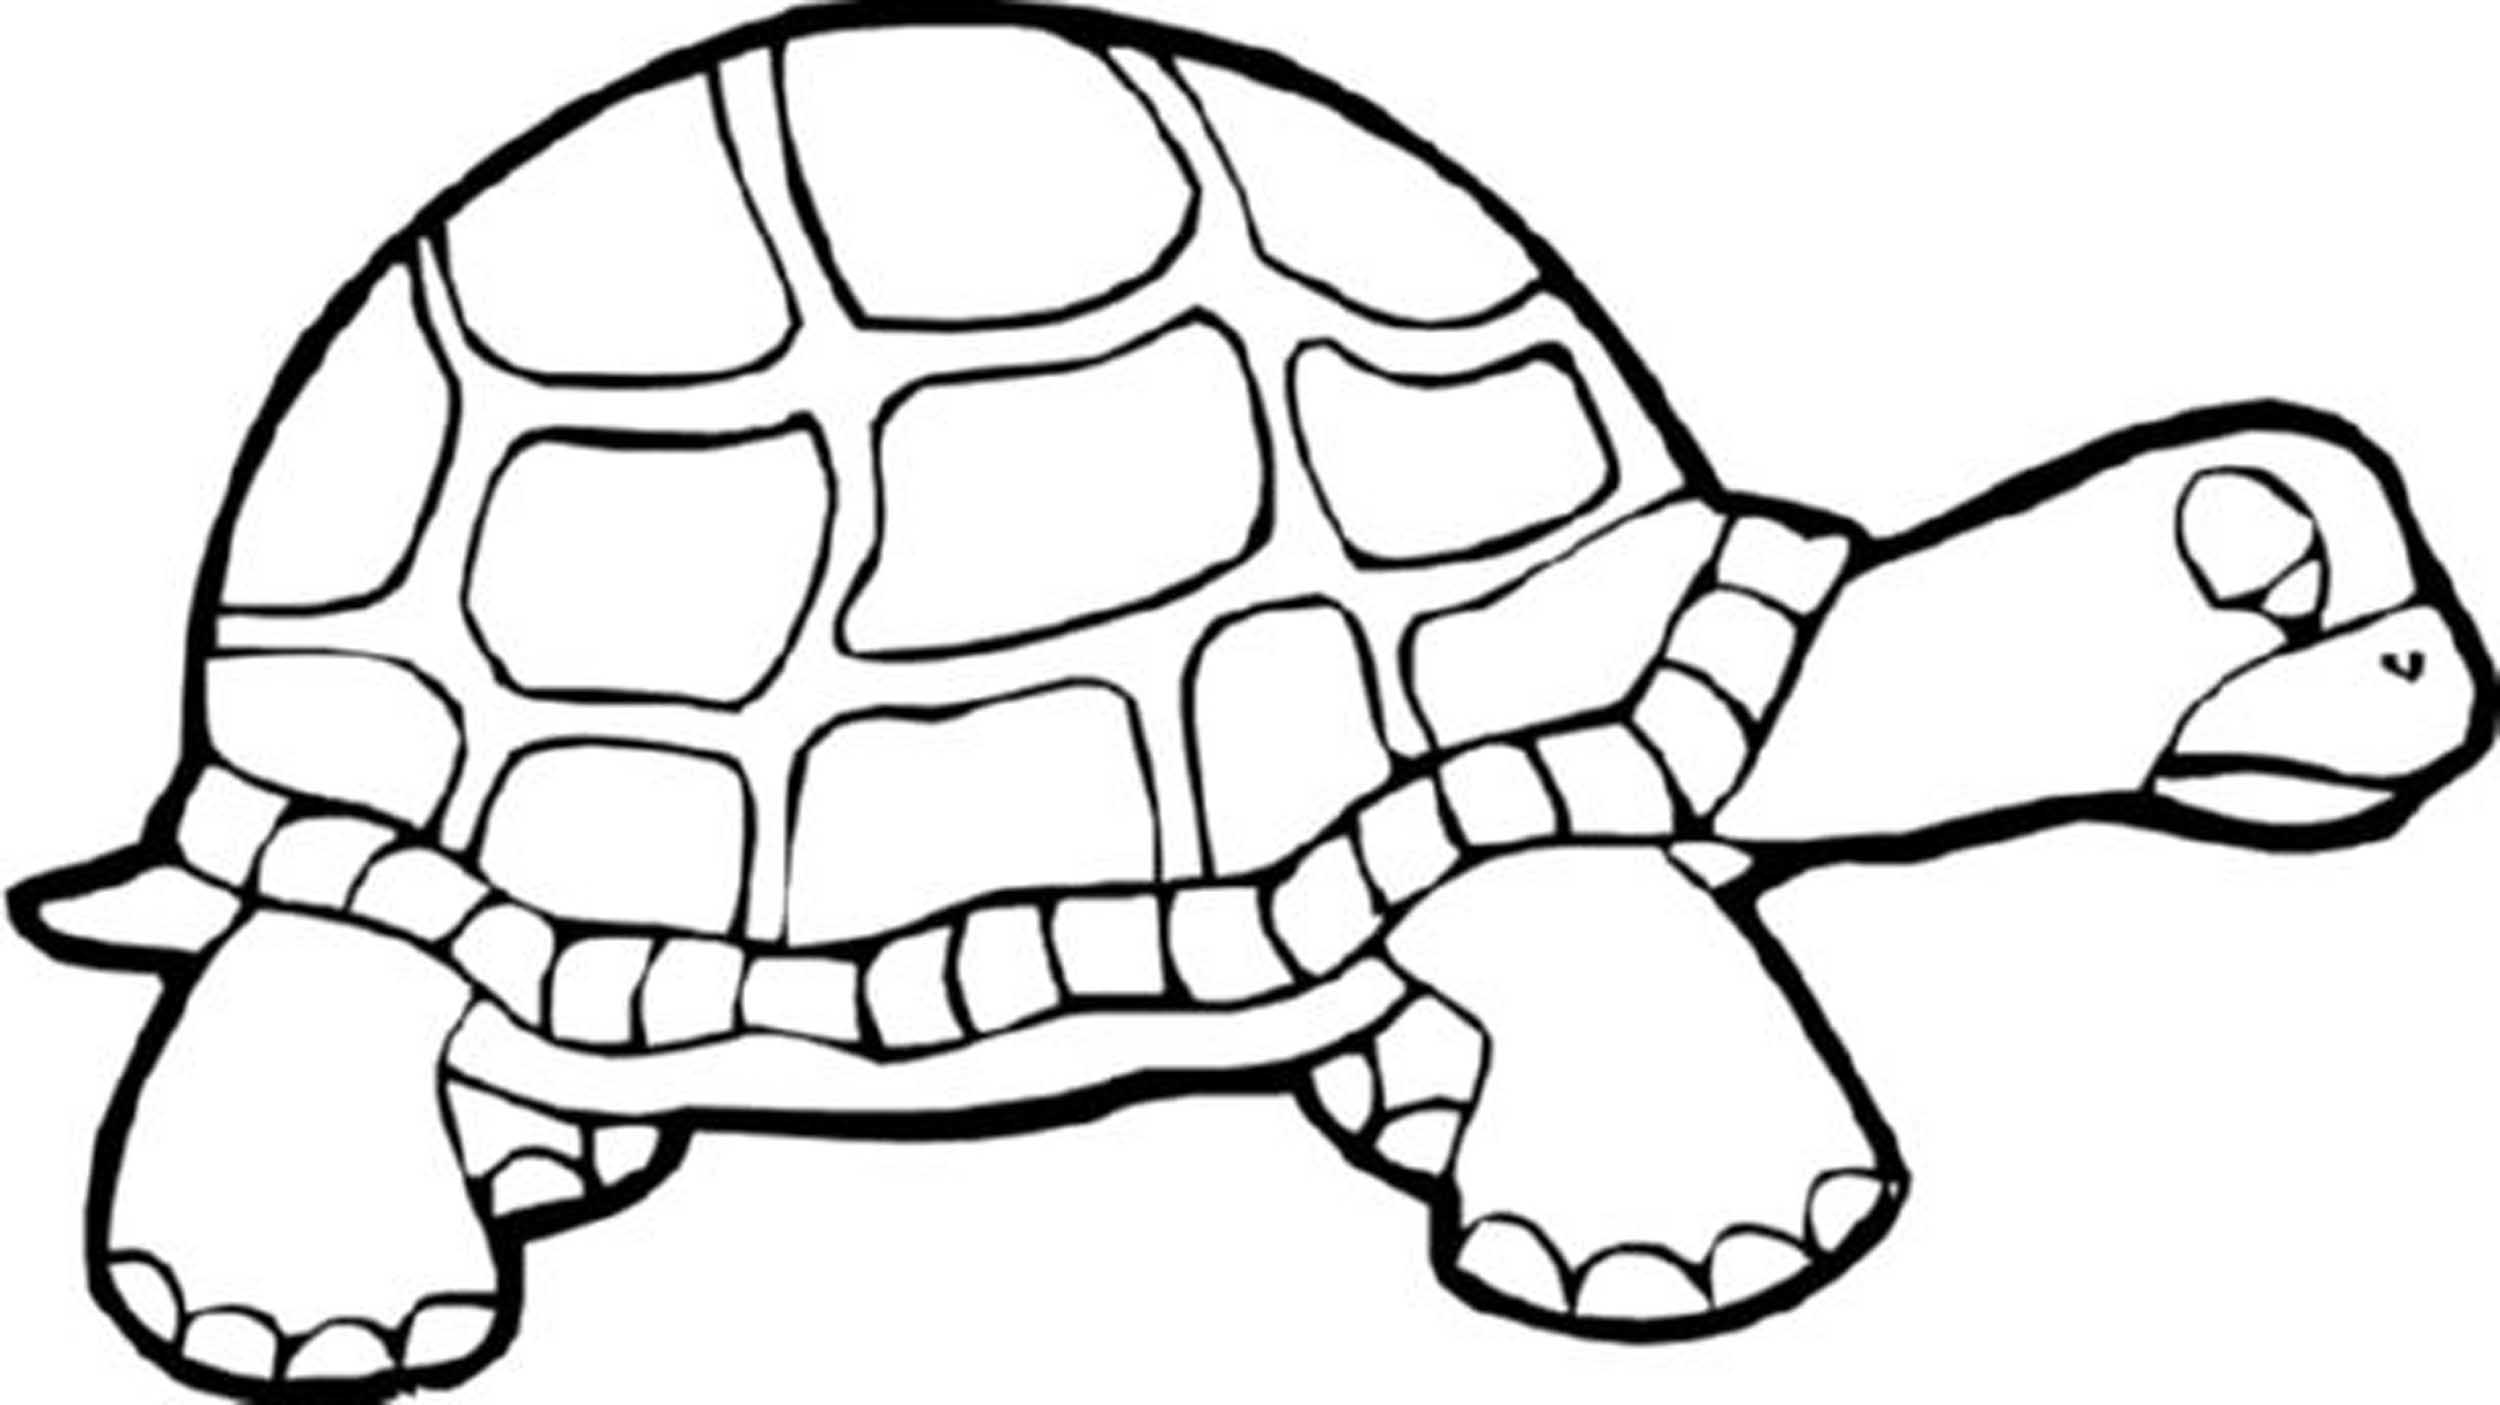 tortoise colouring pictures turtles to print turtles kids coloring pages pictures tortoise colouring